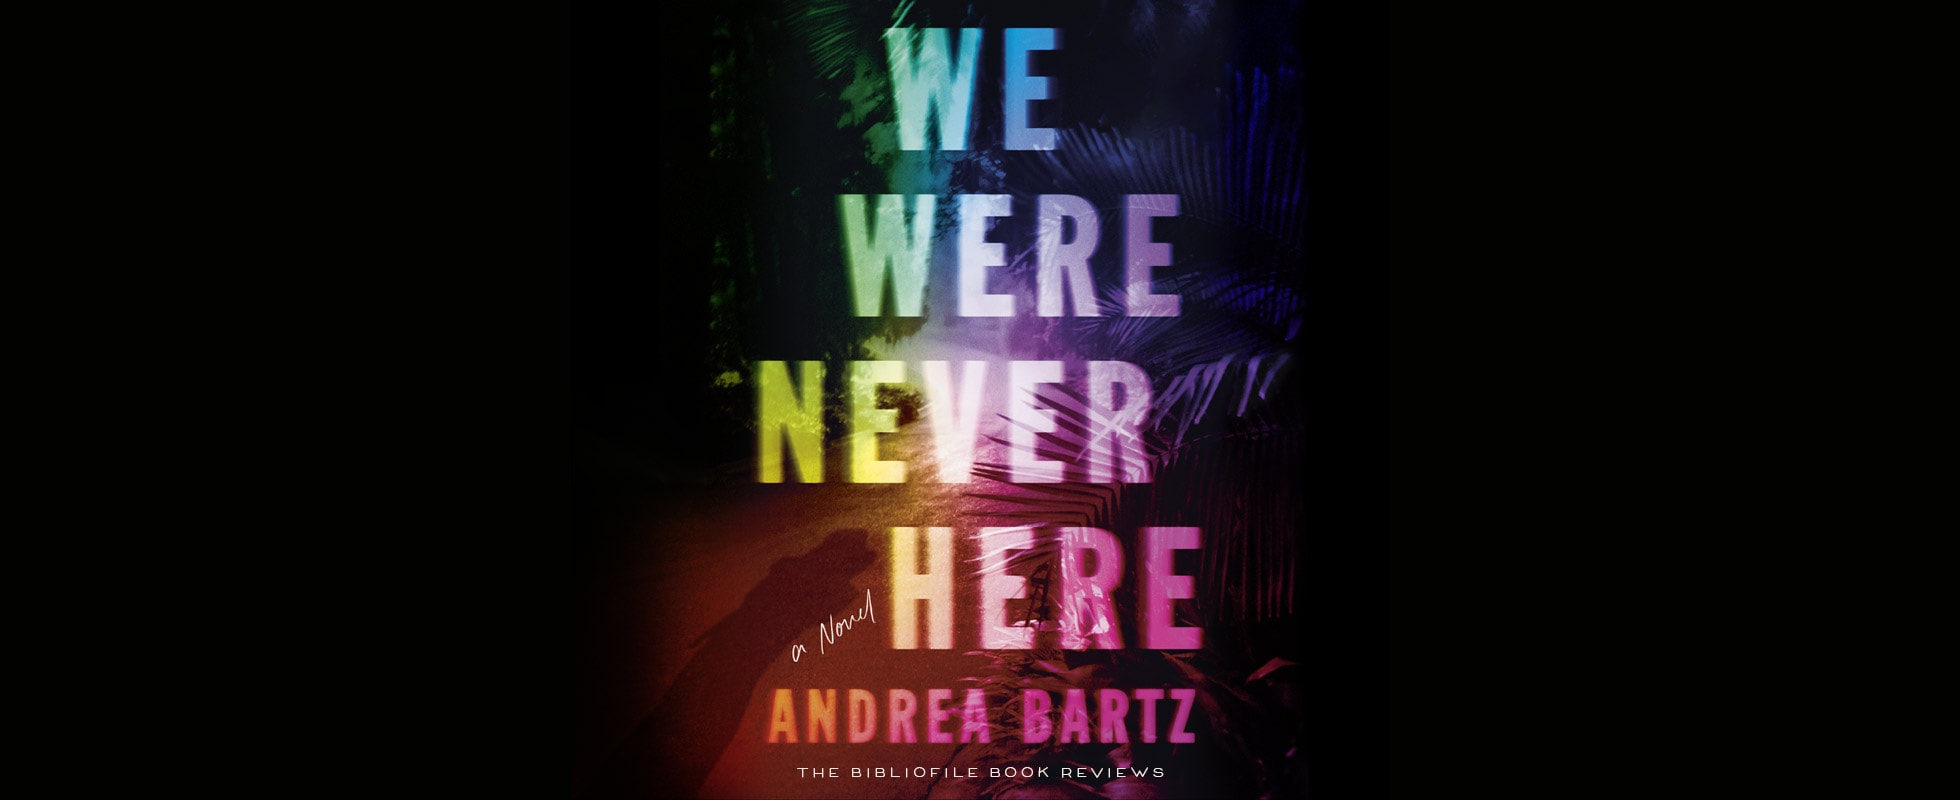 we were never here by andrea bartz book review summary spoilers recap synopsis